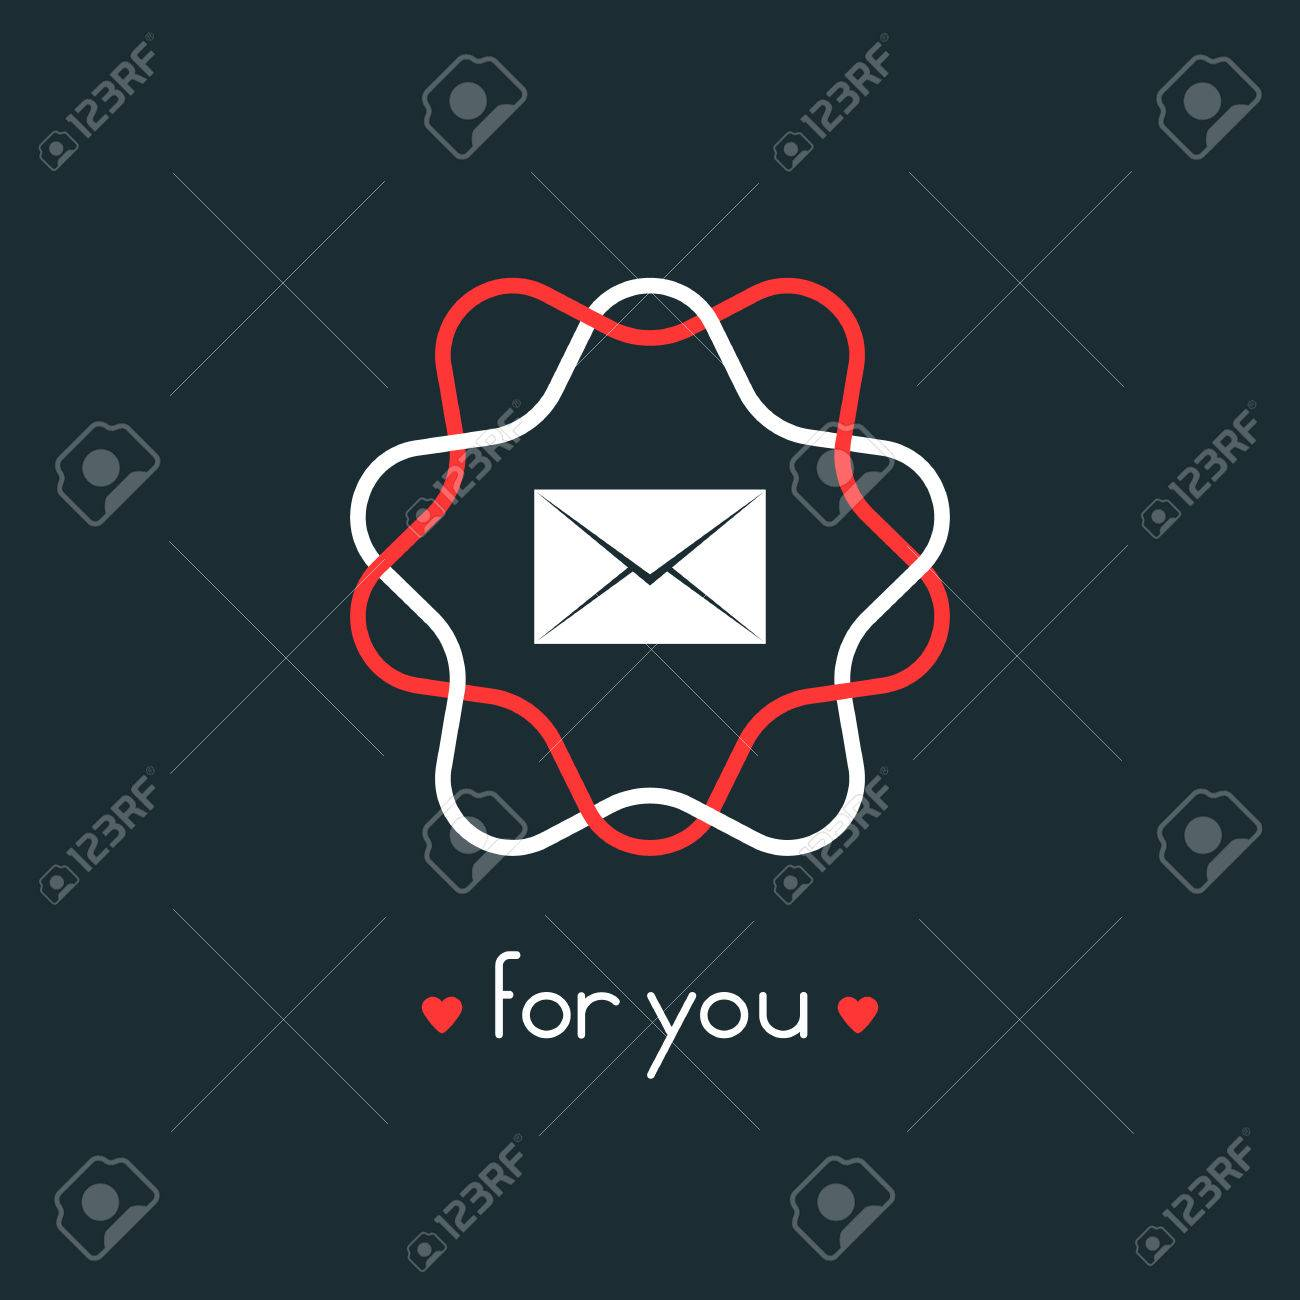 letter for you with red and white sign  concept of billet-doux,